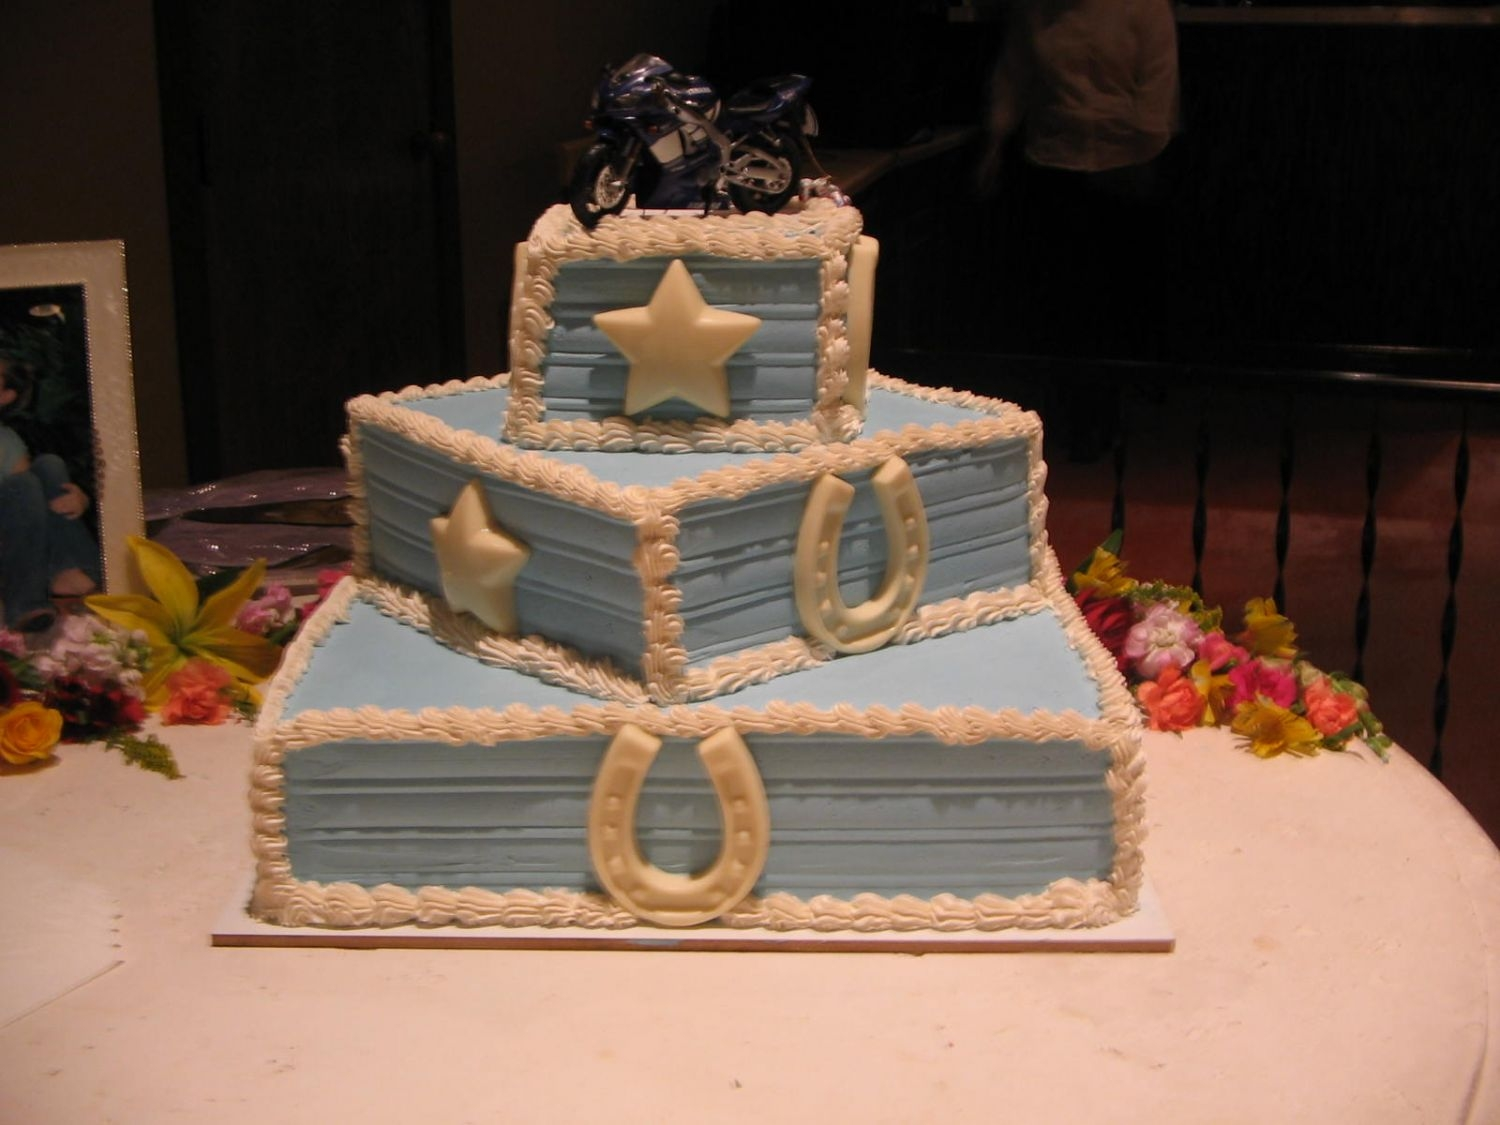 Img_0240.jpg western wedding cakewhite almond cake, whipped cream icing, stars and horseshoes made out of white choc.